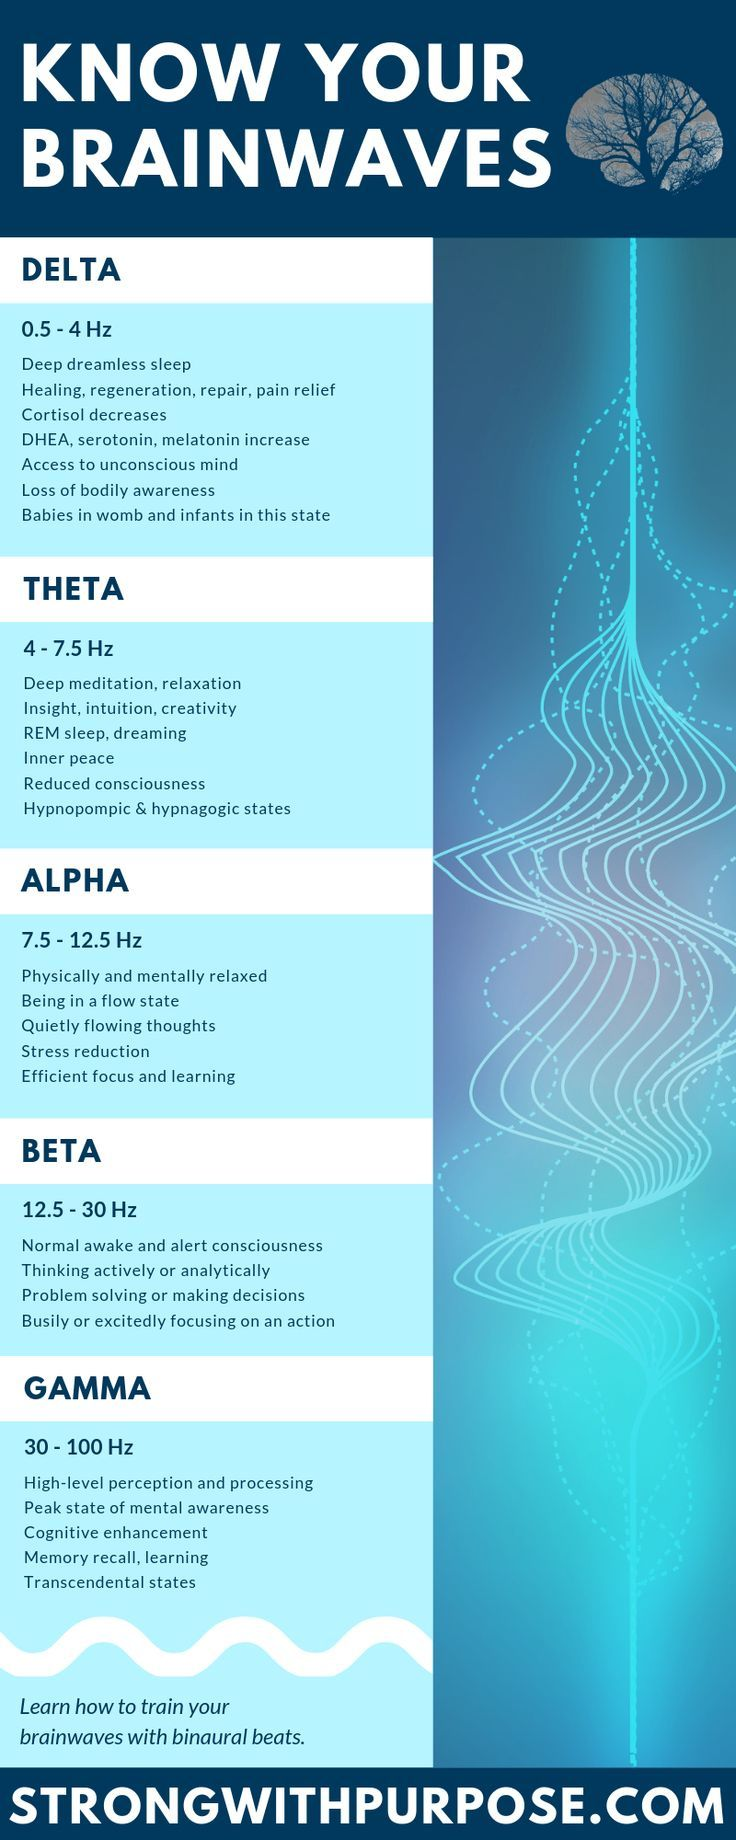 The Science of Brainwaves  Binaural Beats  Strong with Purpose  Spirituality Healing Intuitive Infographic about delta theta alpha beta and gamma brainwaves Learn more ab...